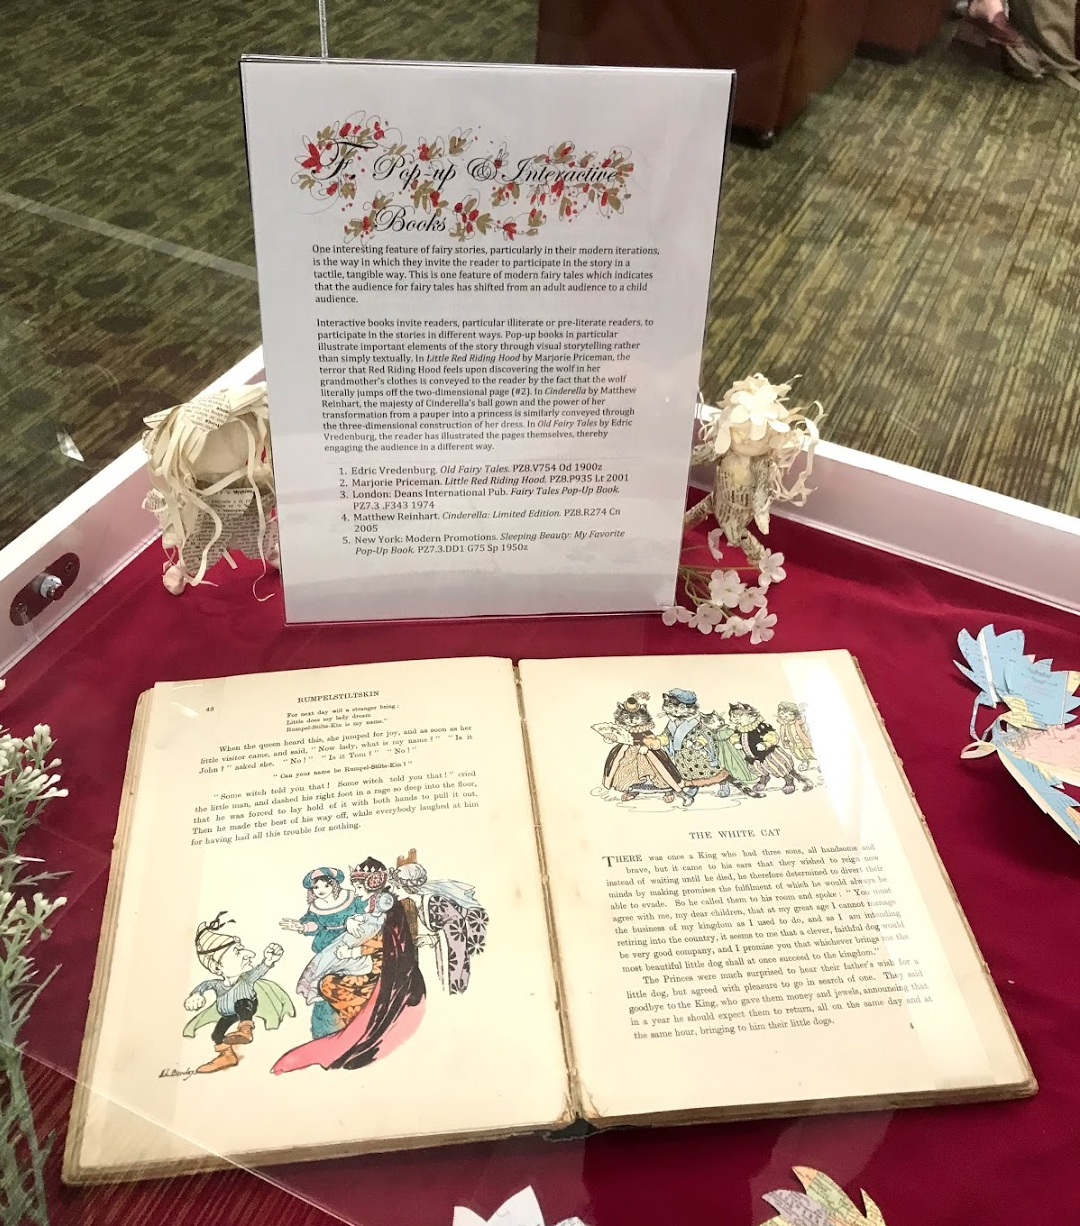 Each of the display cases had a text panel and then several books relating to the theme described in the panel. The displays also included hand painted red and gold colouring with origami like flowers and figures created by Dr. Kathie Shoemaker the exhibition supervisor.